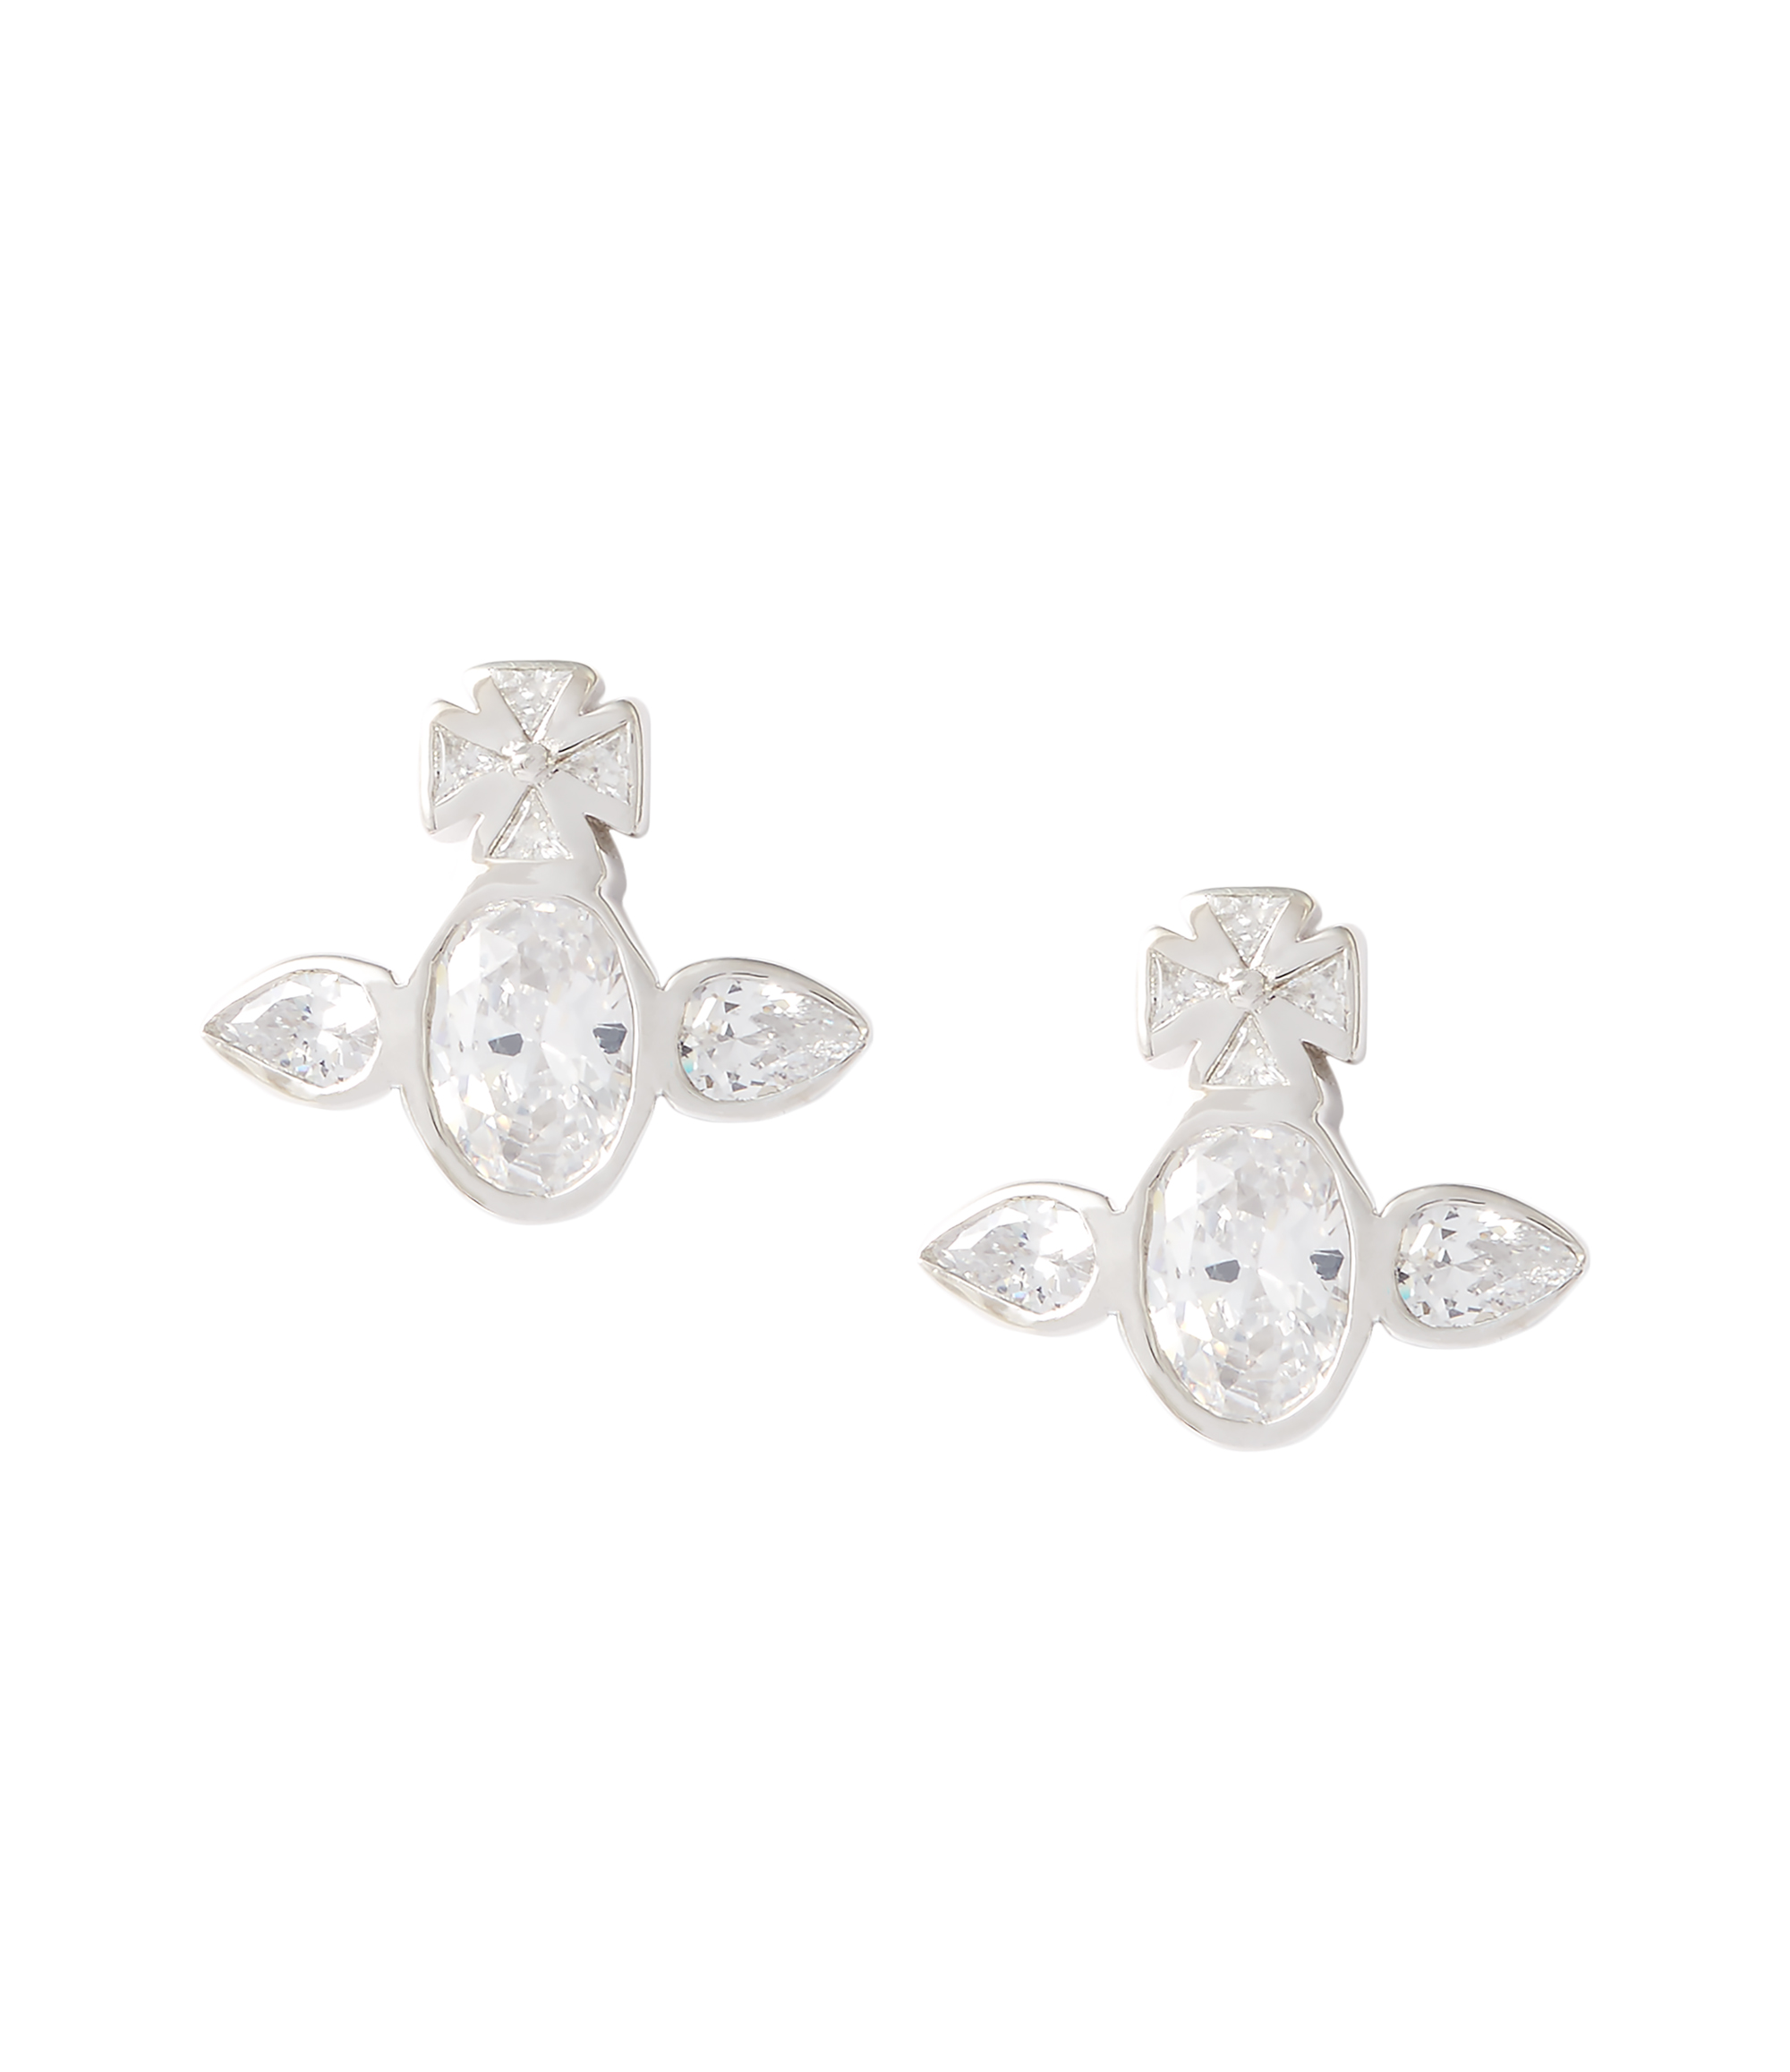 Vivienne Westwood Sterling Silver Carmella Earrings